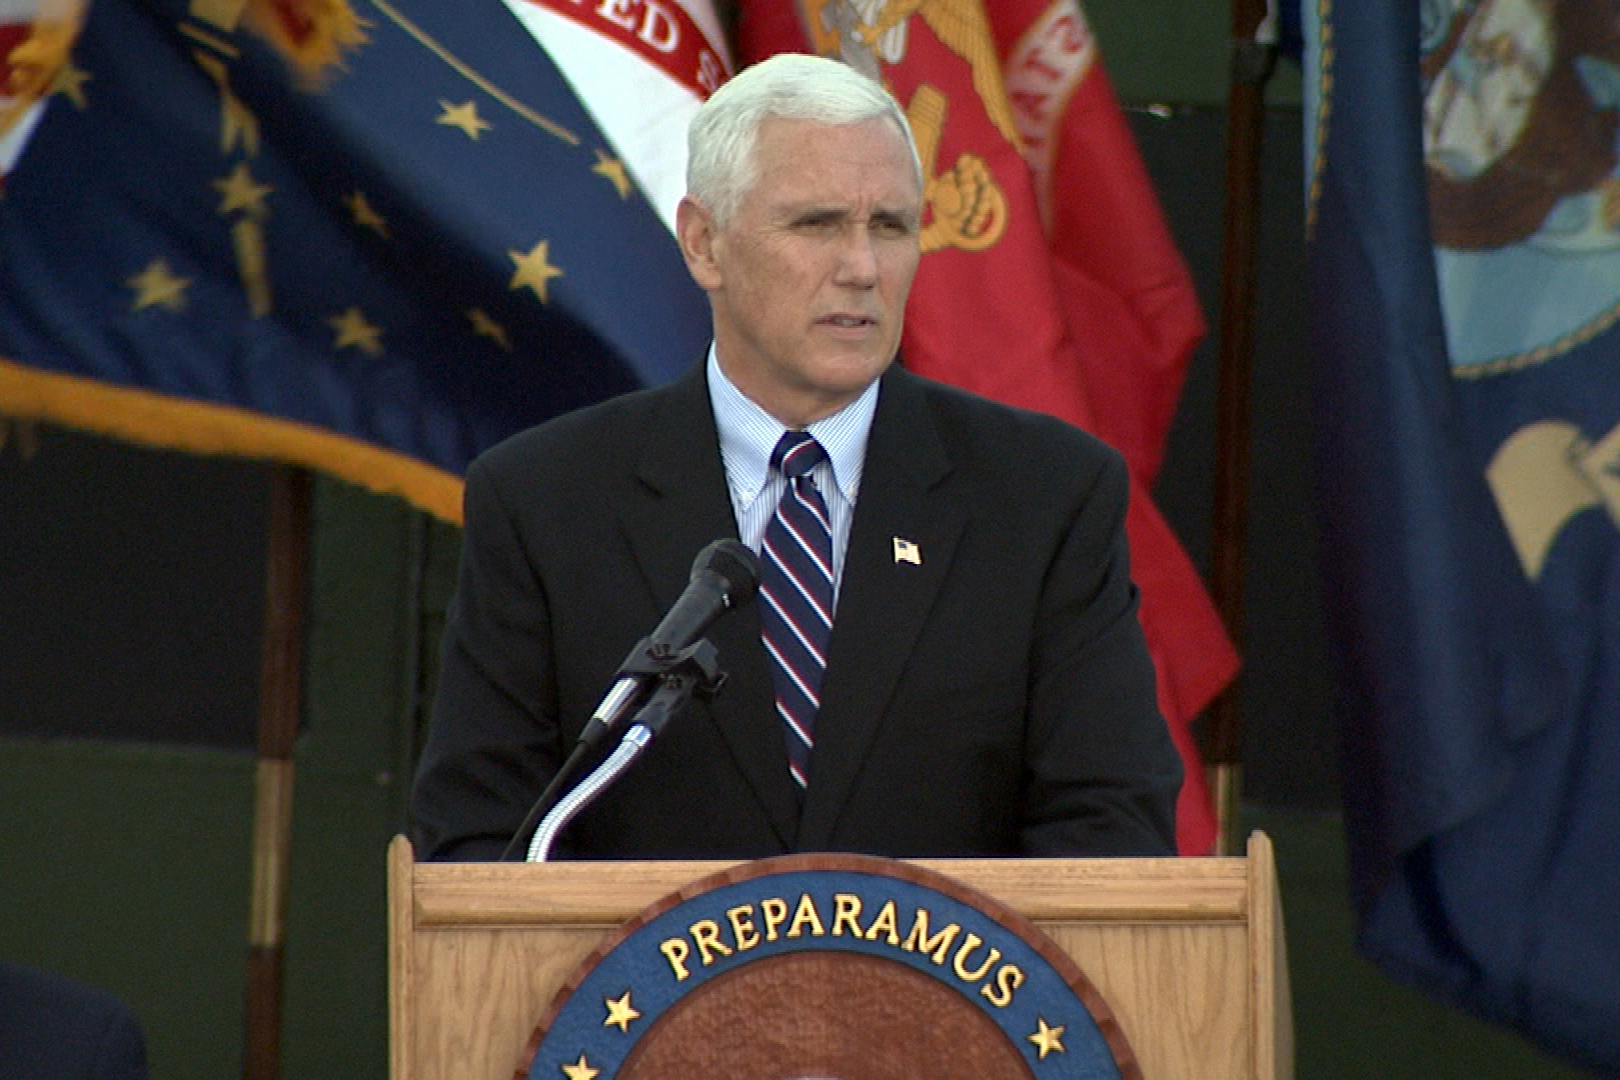 Vice President-elect Mike Pence spent Veteran's Day at Indiana's Camp Atterbury.